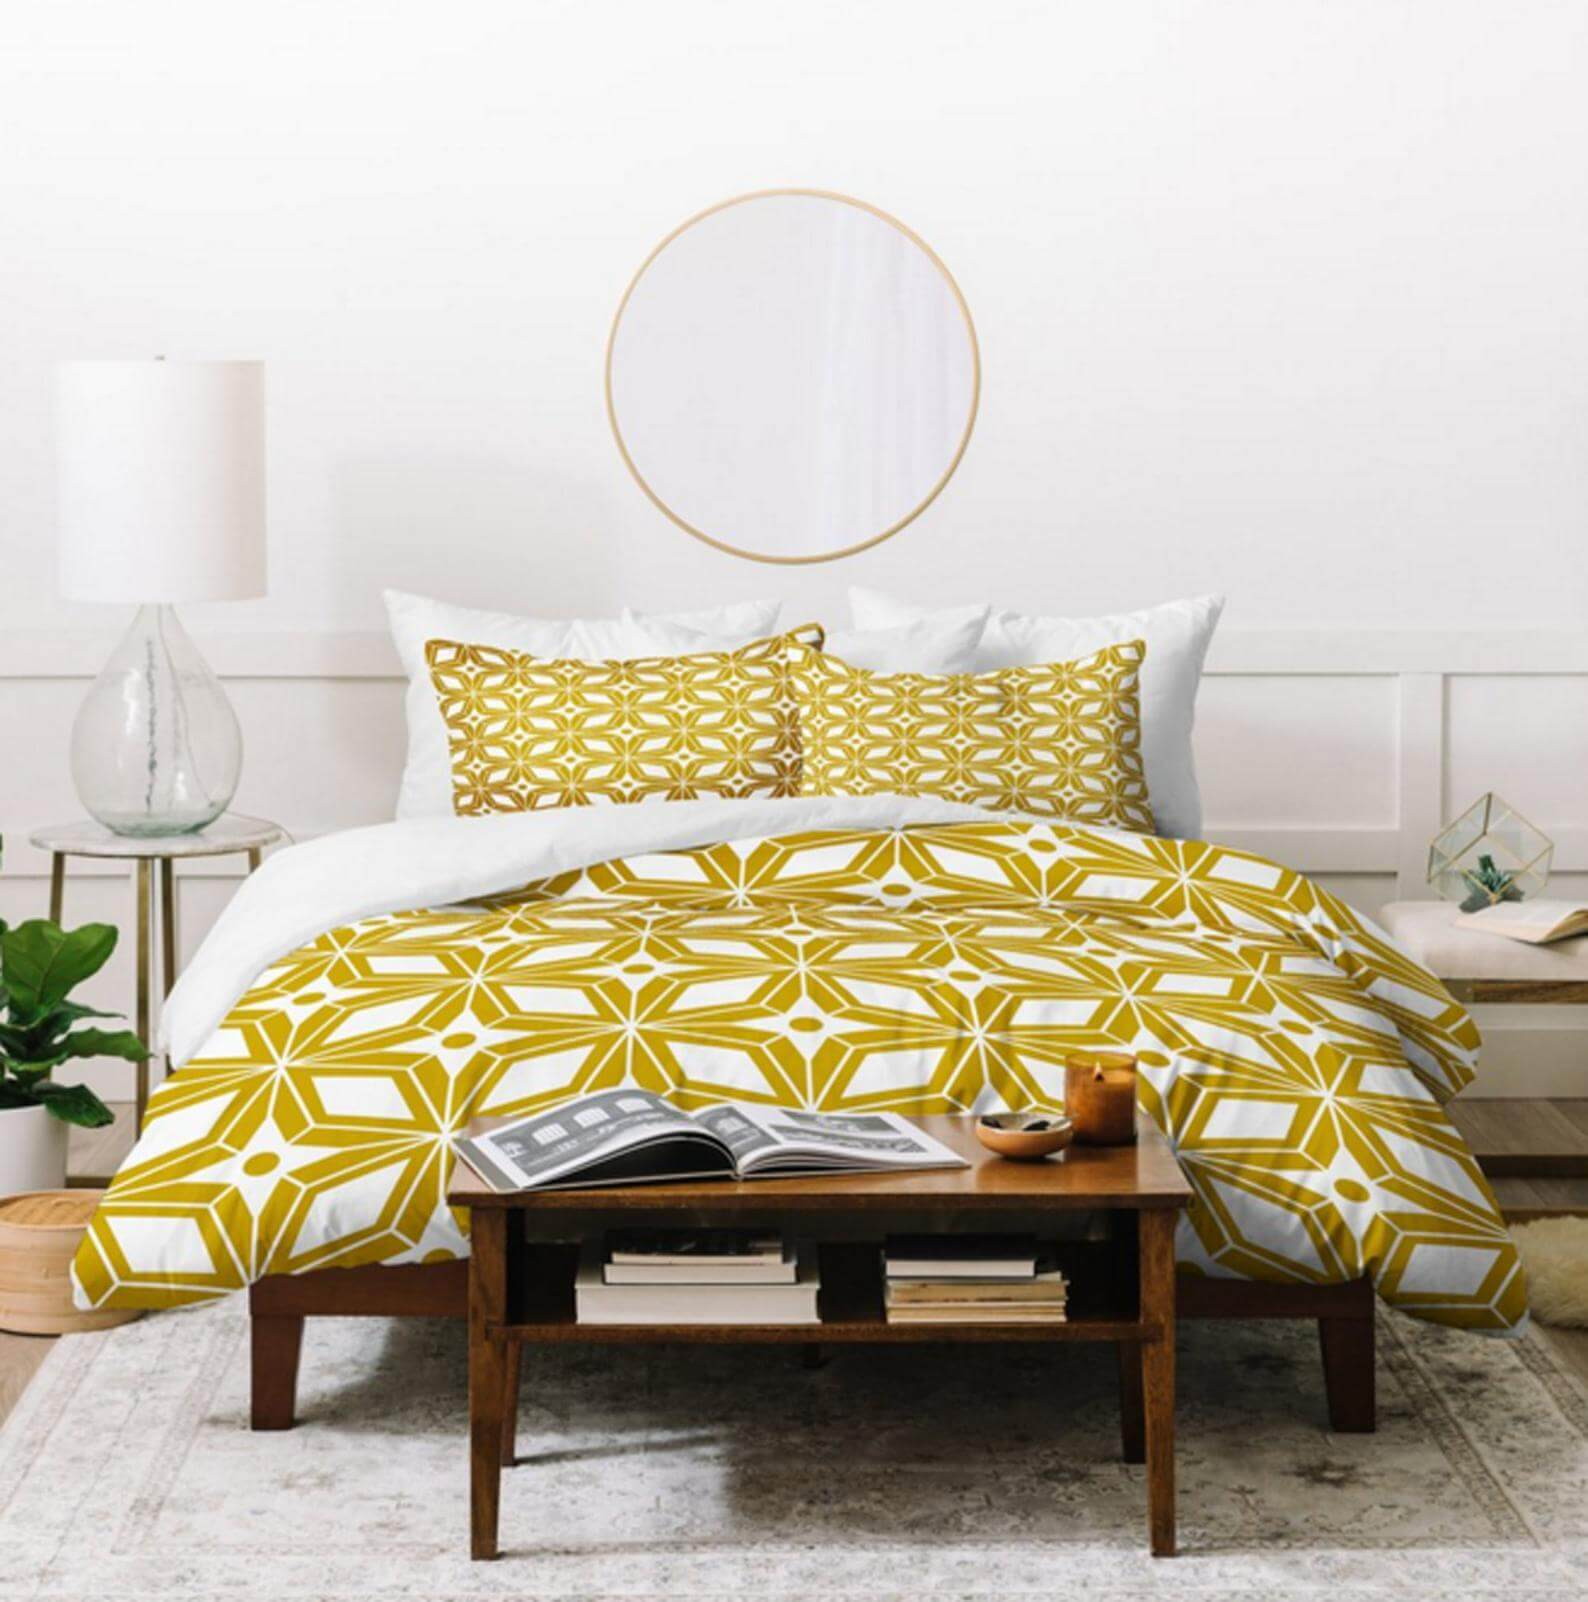 Mid century modern bedding with a yellow starburst print.